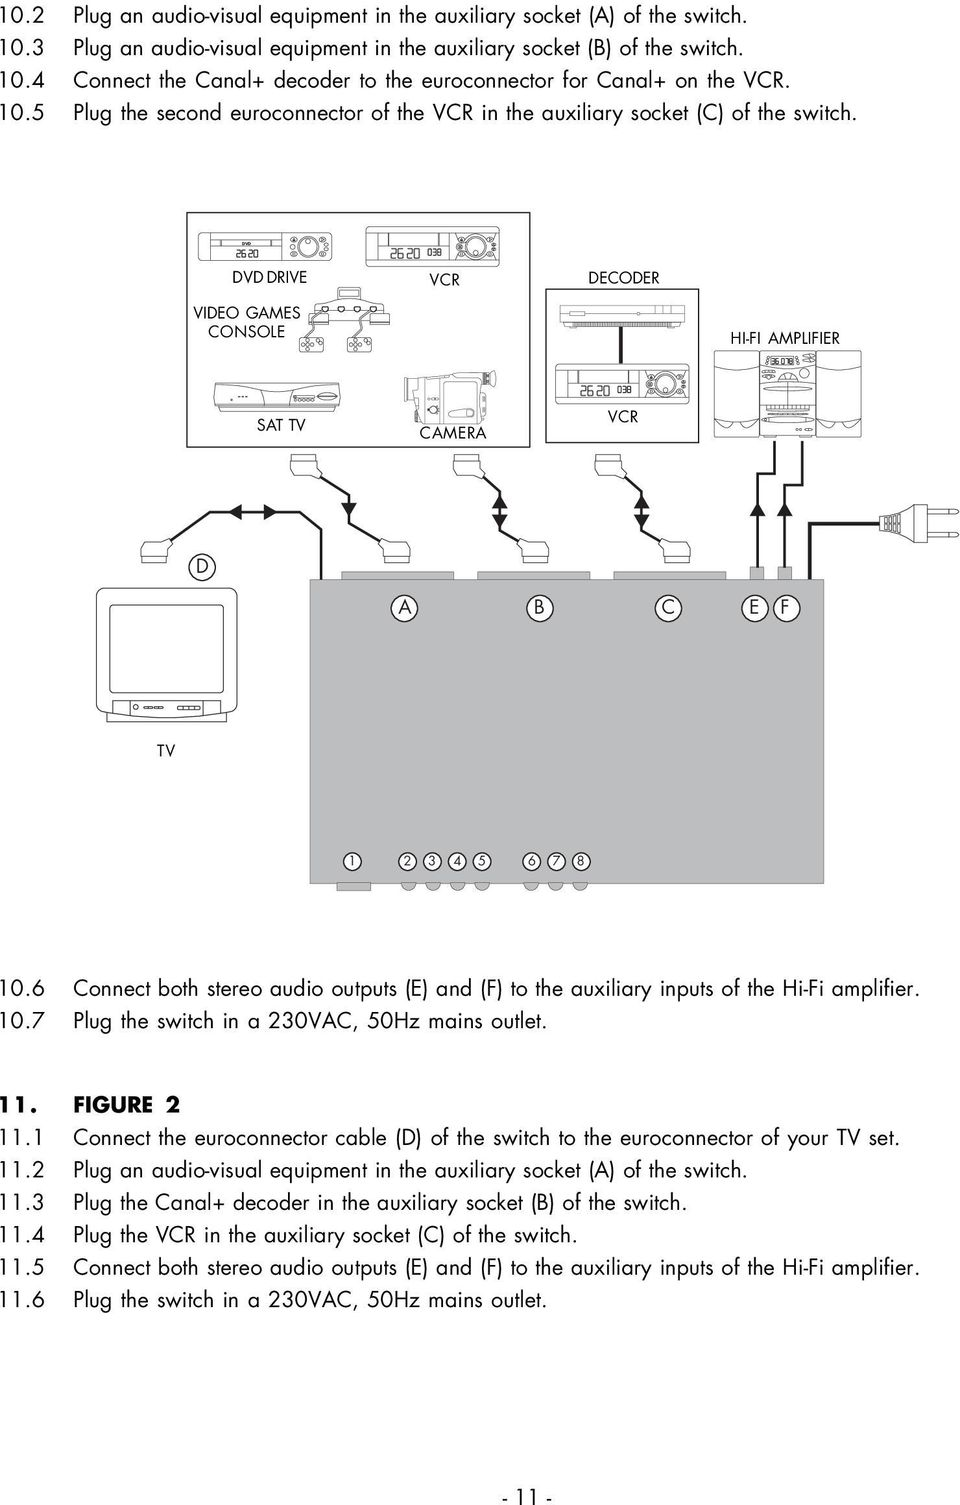 6 Connect both stereo audio outputs (E) and (F) to the auxiliary inputs of the Hi-Fi amplifier. 10.7 Plug the switch in a 230VAC, 50Hz mains outlet. 11. FIGURE 2 11.